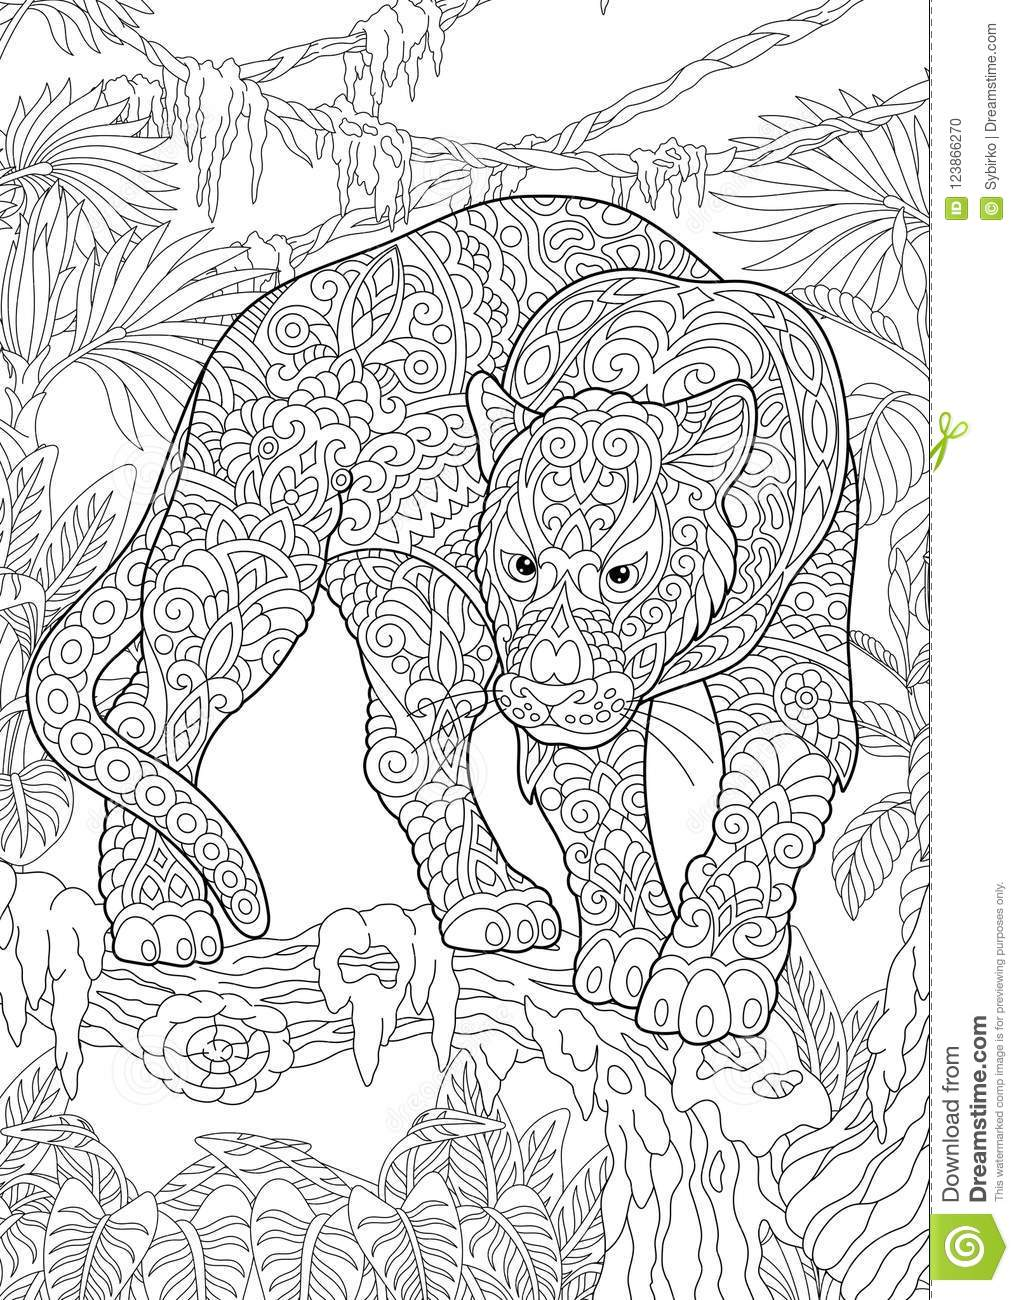 Zentangle black panther stock vector. Illustration of creature ...